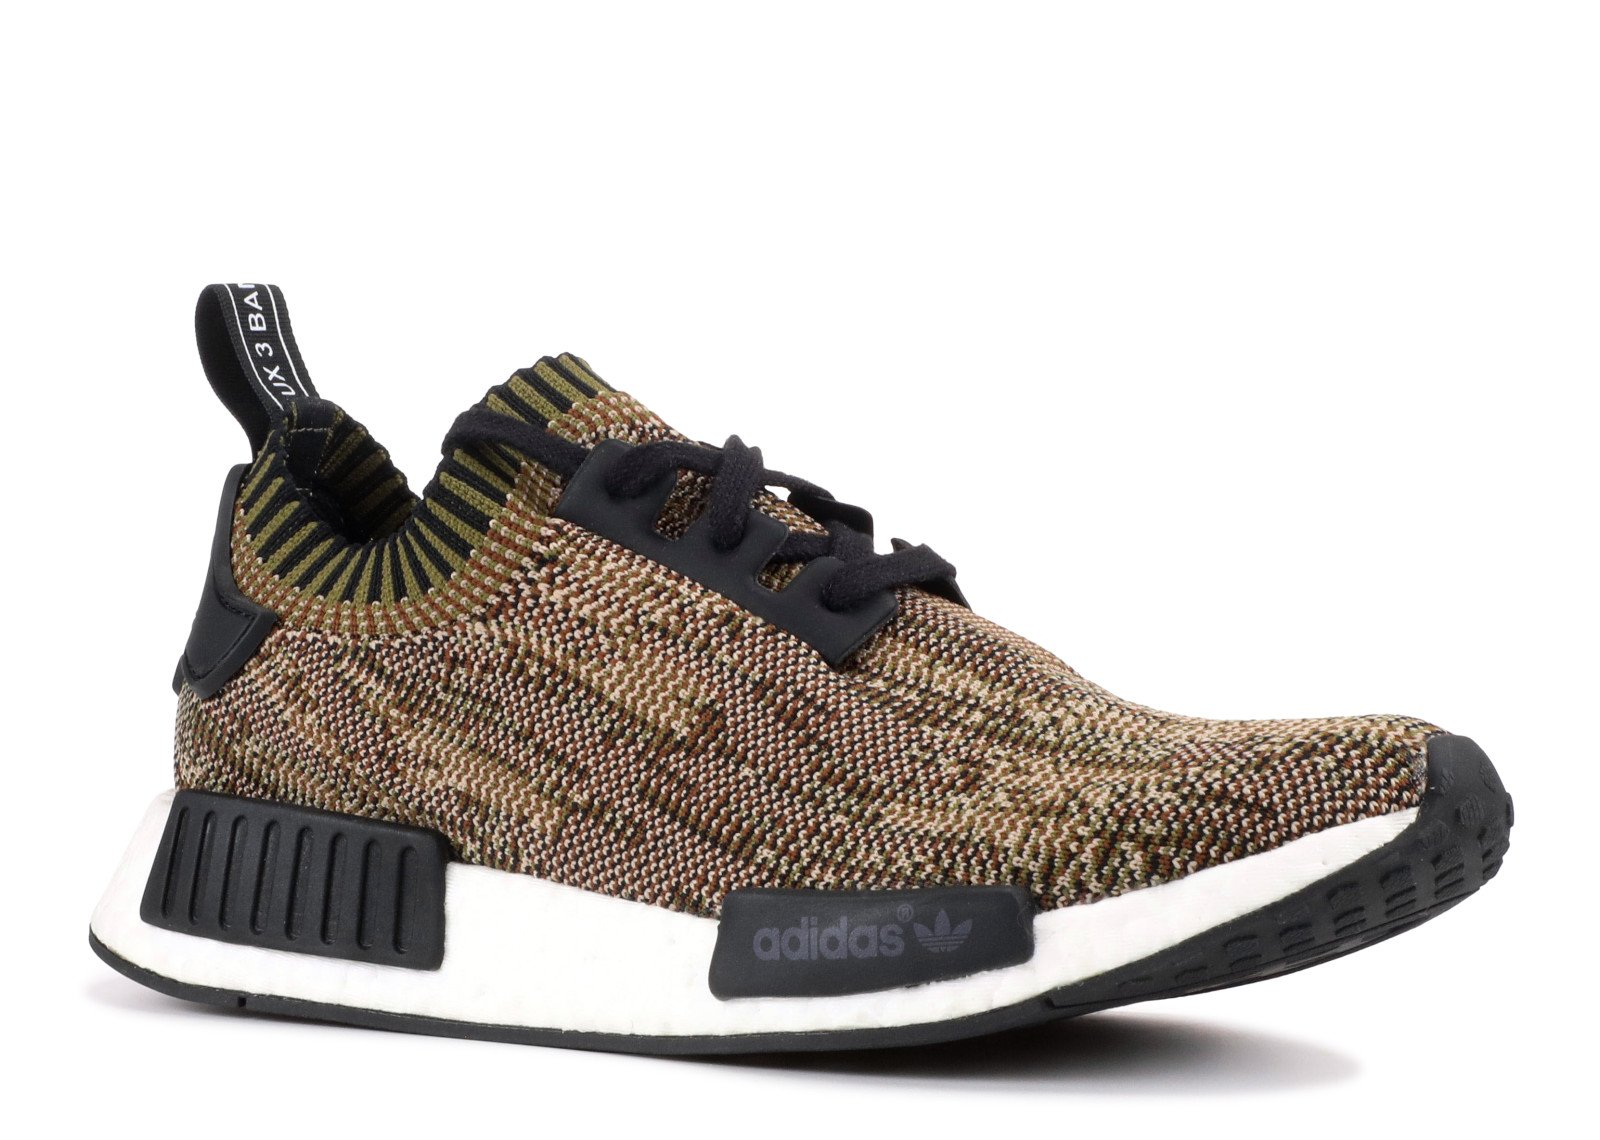 b907b8dd3ed44 Adidas NMD R1 PK Nomad Runner Primeknit Olive Camo Core Black White Size 10  BA8597